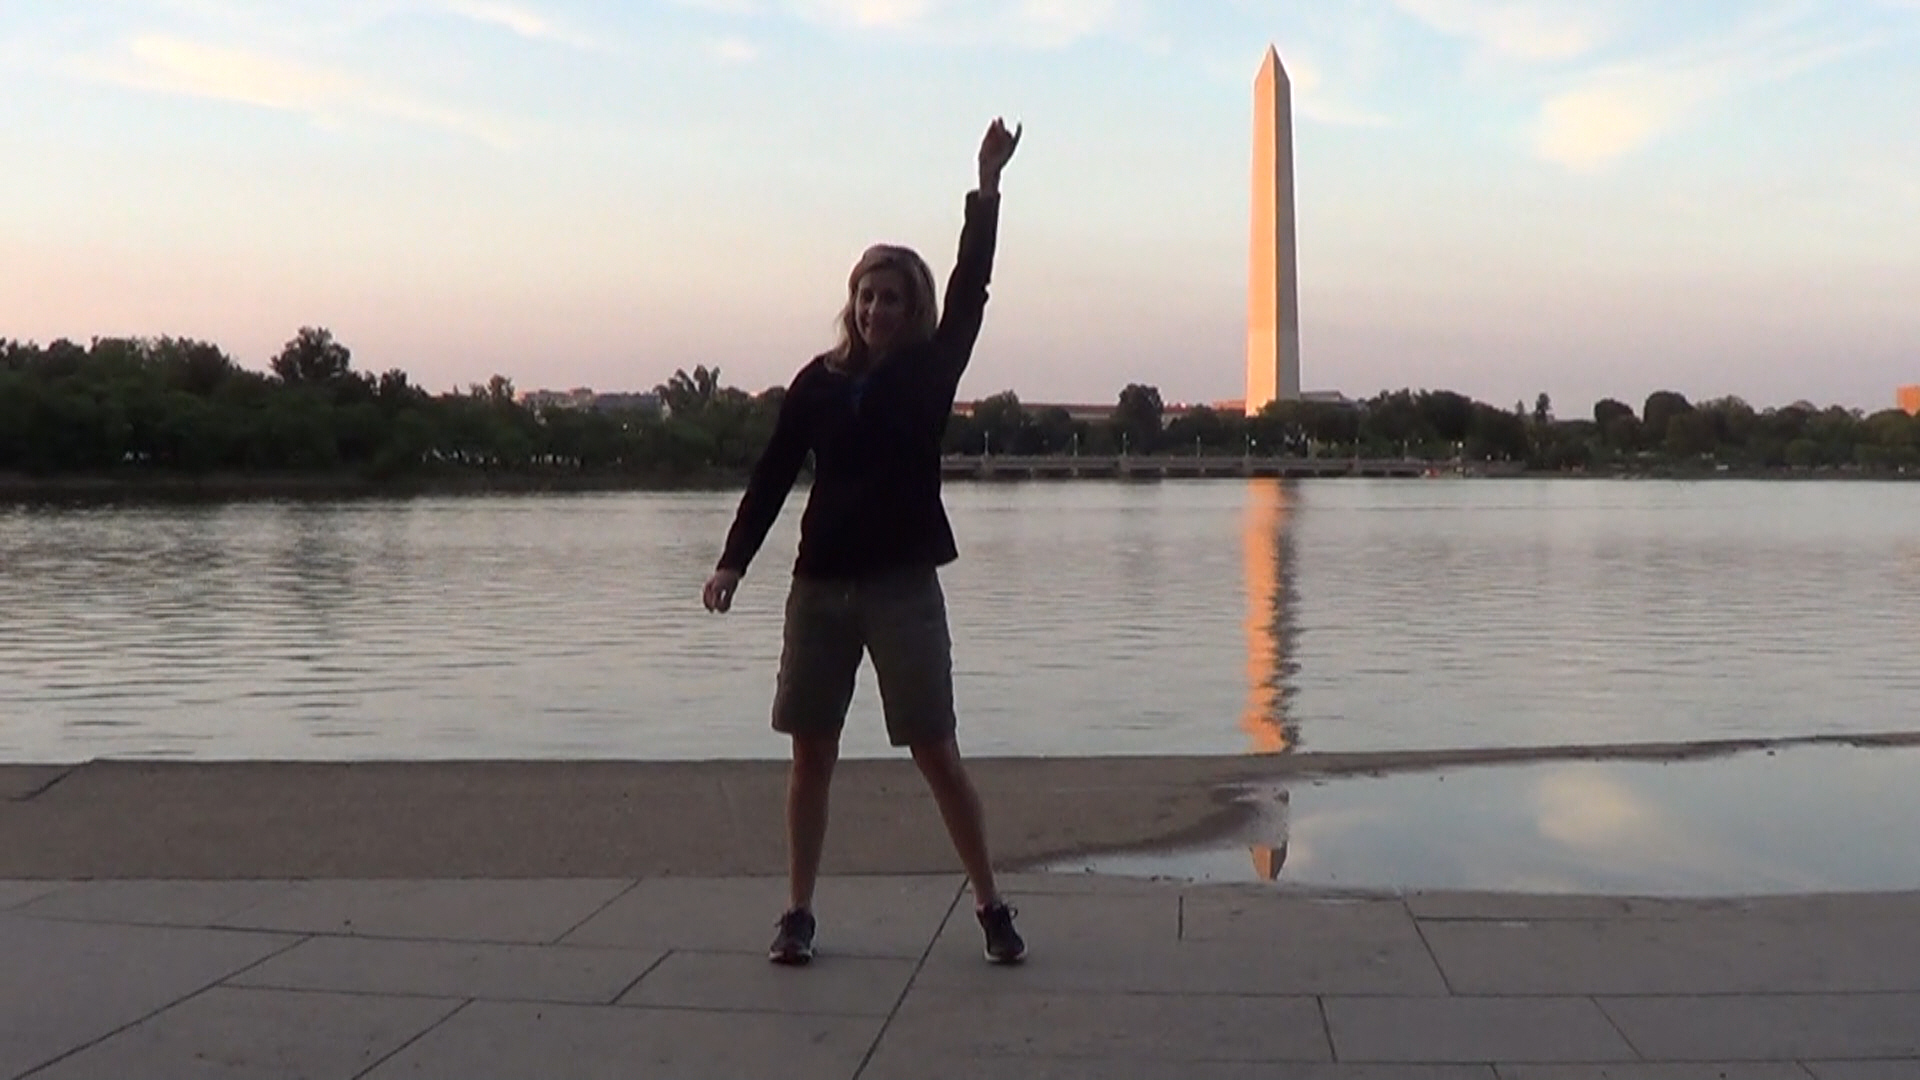 16 - Washington Monument